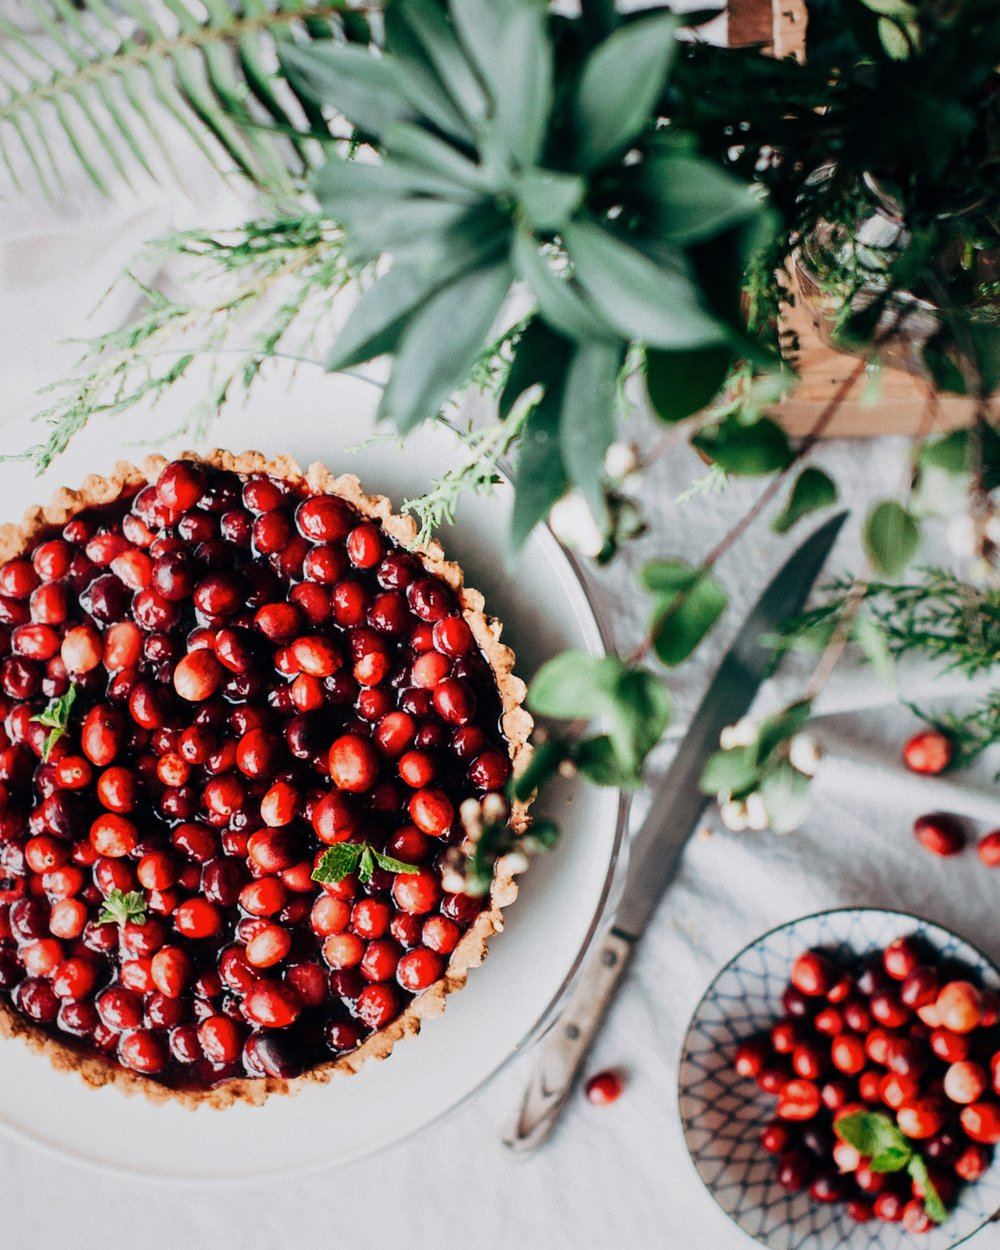 Cranberries - Ingredient of the monthCranberries are the deep-red, tart fruit of a low, scrubby, woody bog plant.Make them into a tart sauce to accompany duck, pair with brie or mushrooms or make a delicious autumnal tart.